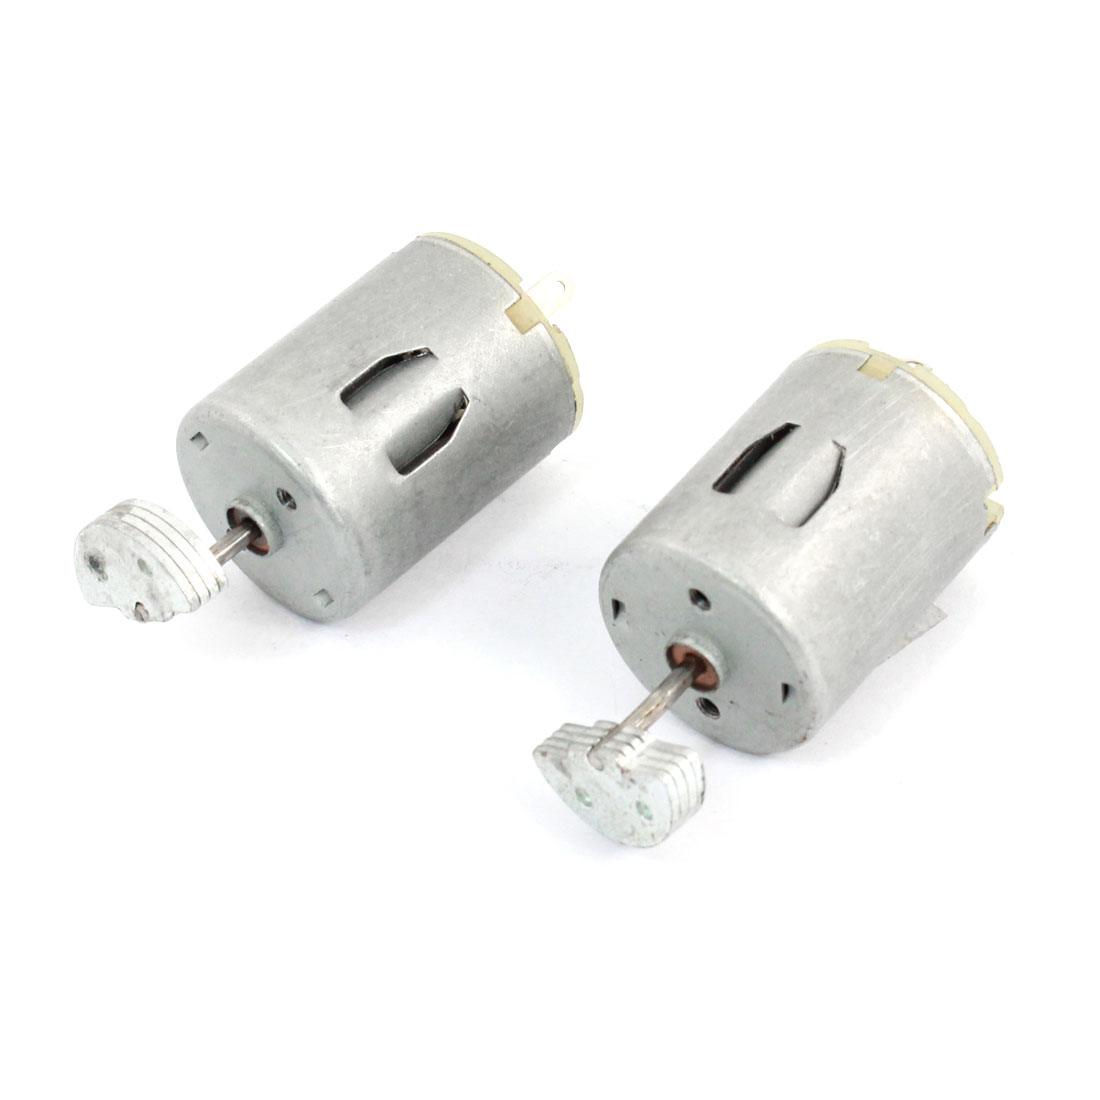 DC 3V-9V 2.2A 13500RPM Output Speed Micro Vibrating Motor 2pcs 30x24mm